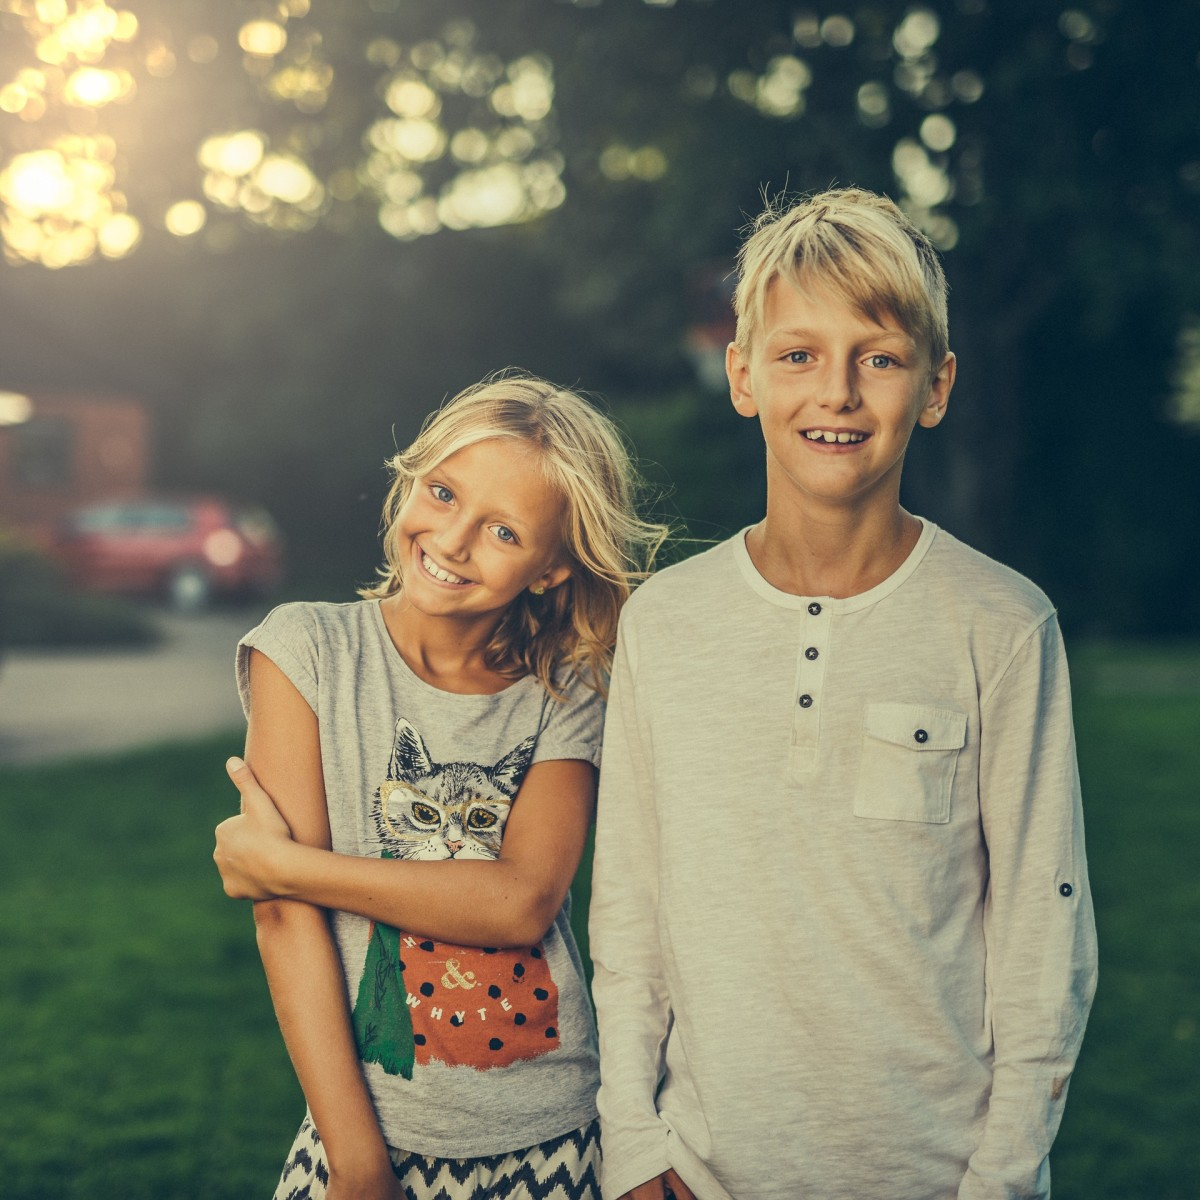 Favoritism in families can be fluid depending on a child's age, developmental stage, and individual needs.